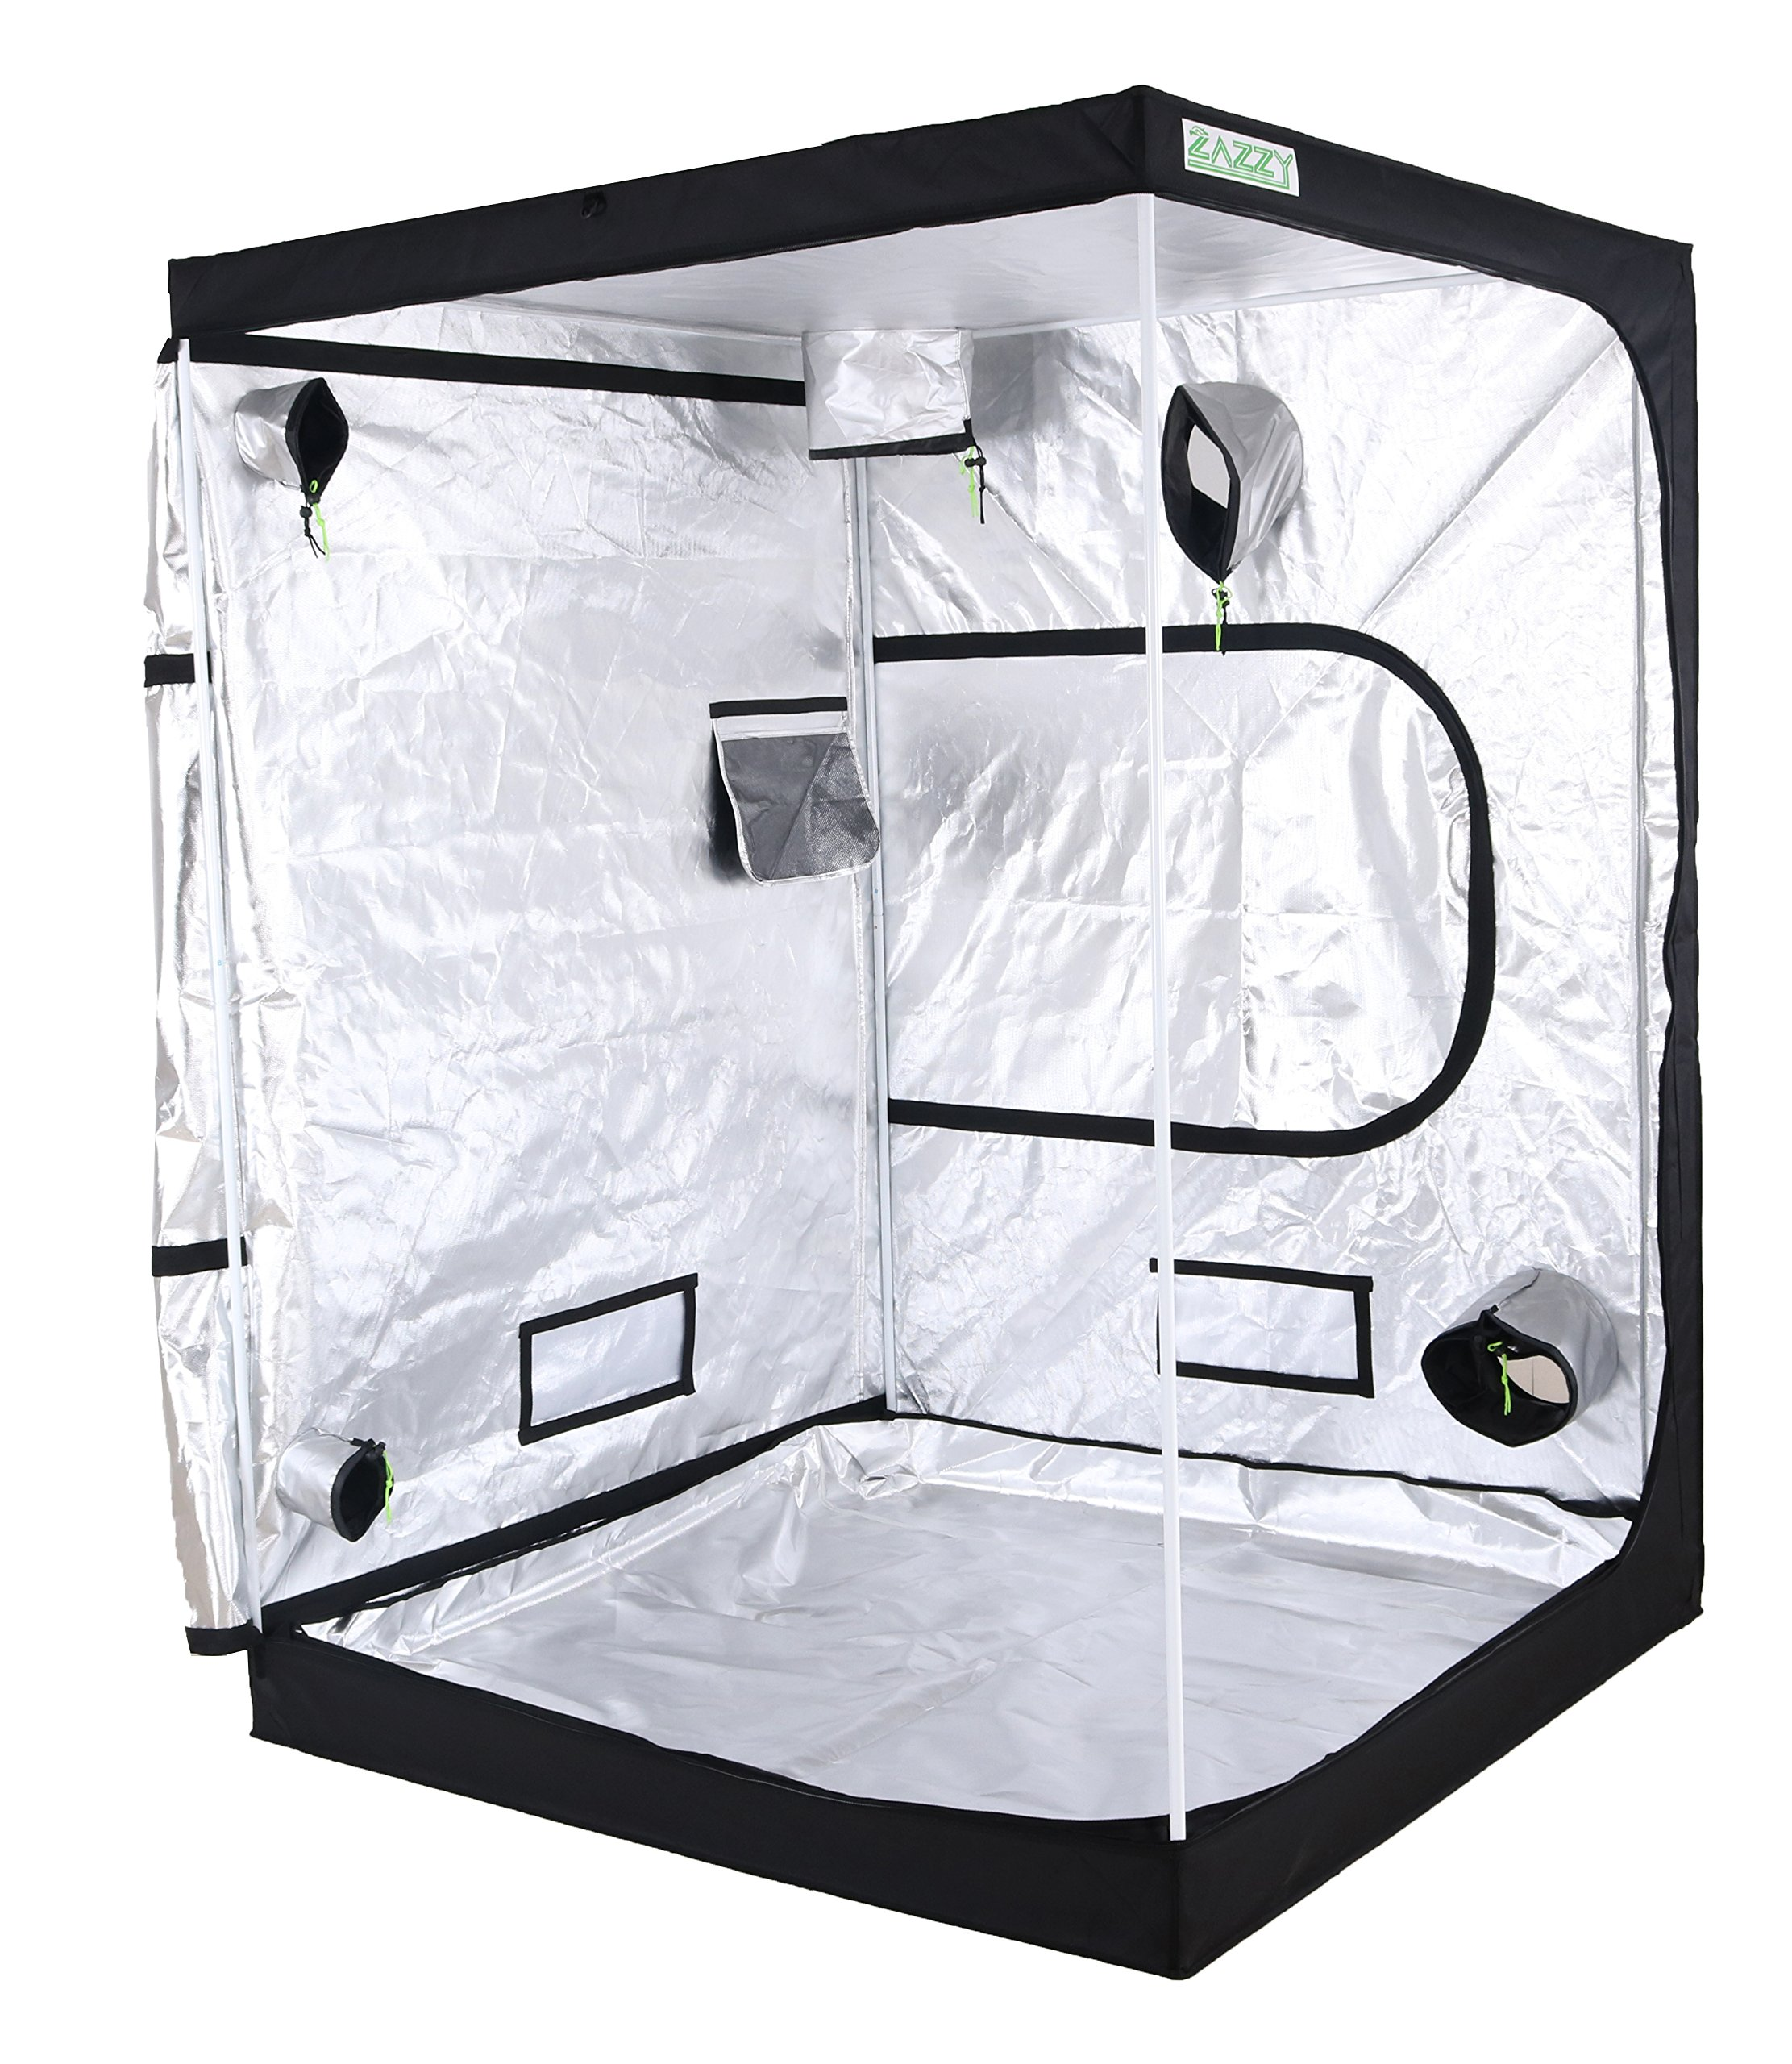 Zazzy 60''x60''x80'' Plant Growing Tents 600D Mylar Hydroponic Indoor Grow Tent for Plant Growing